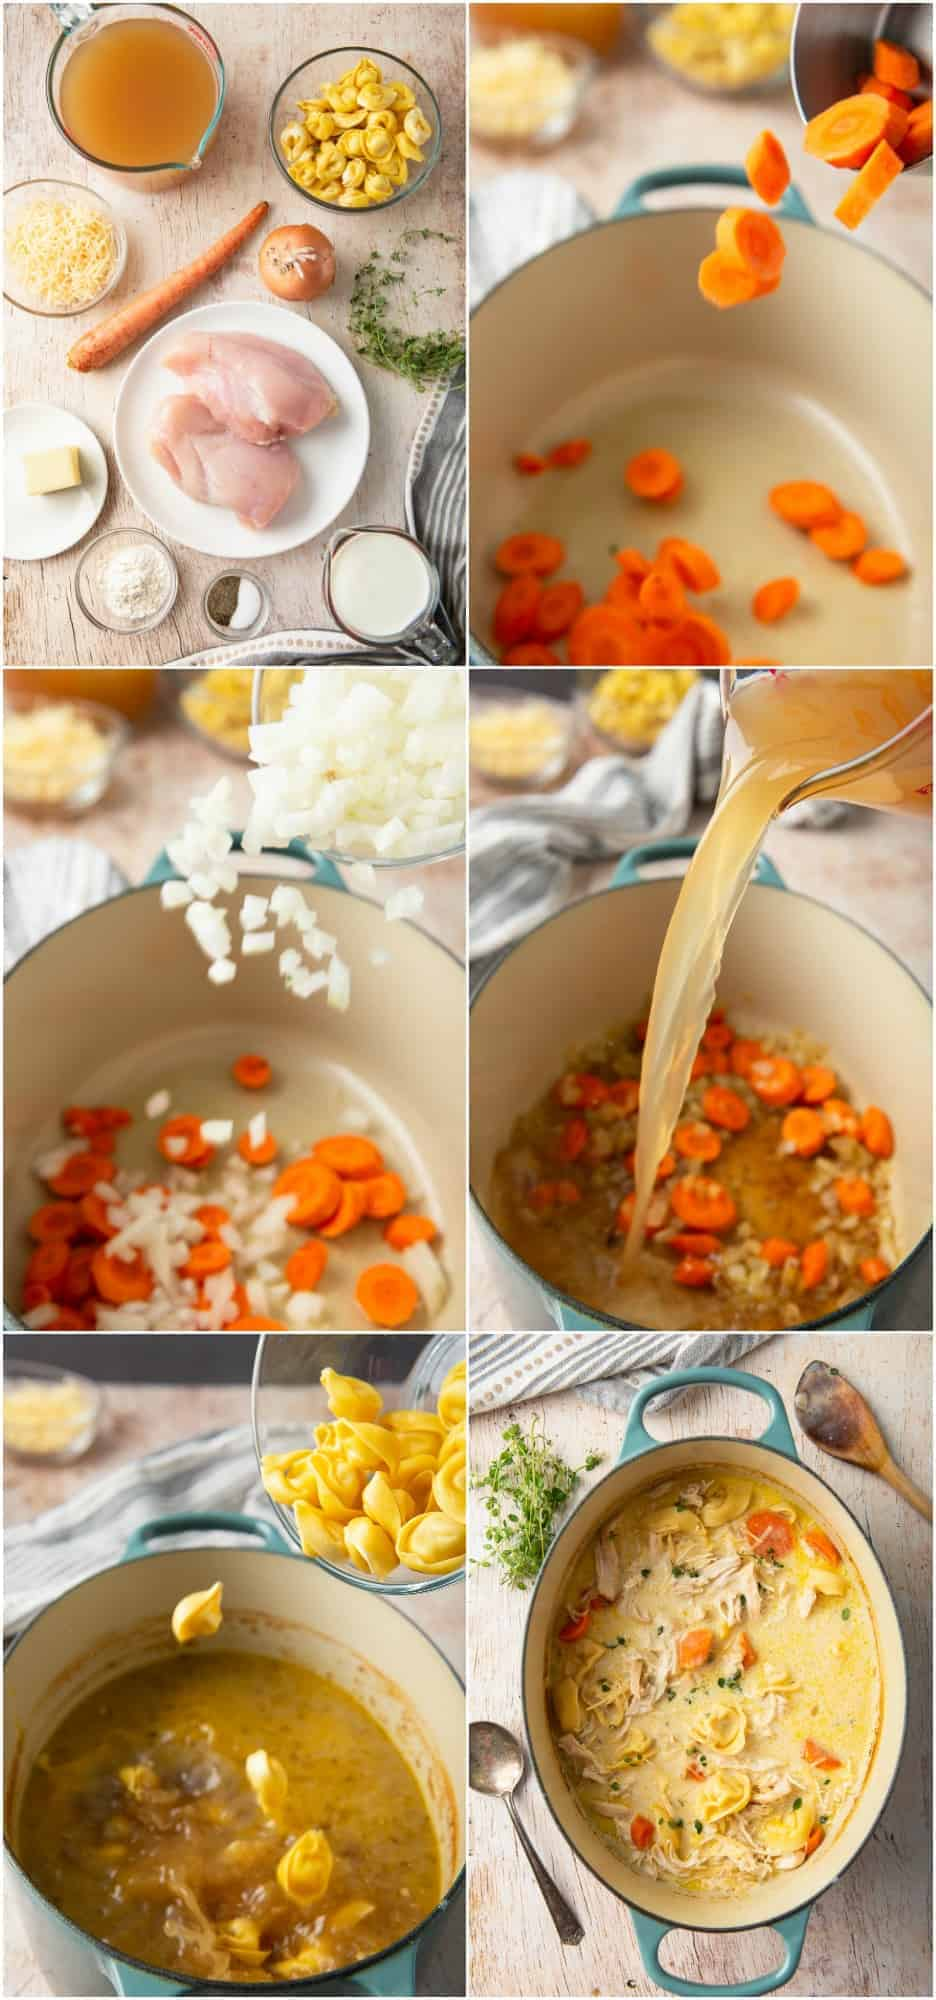 step by step photos of how to make creamy chicken tortellini soup